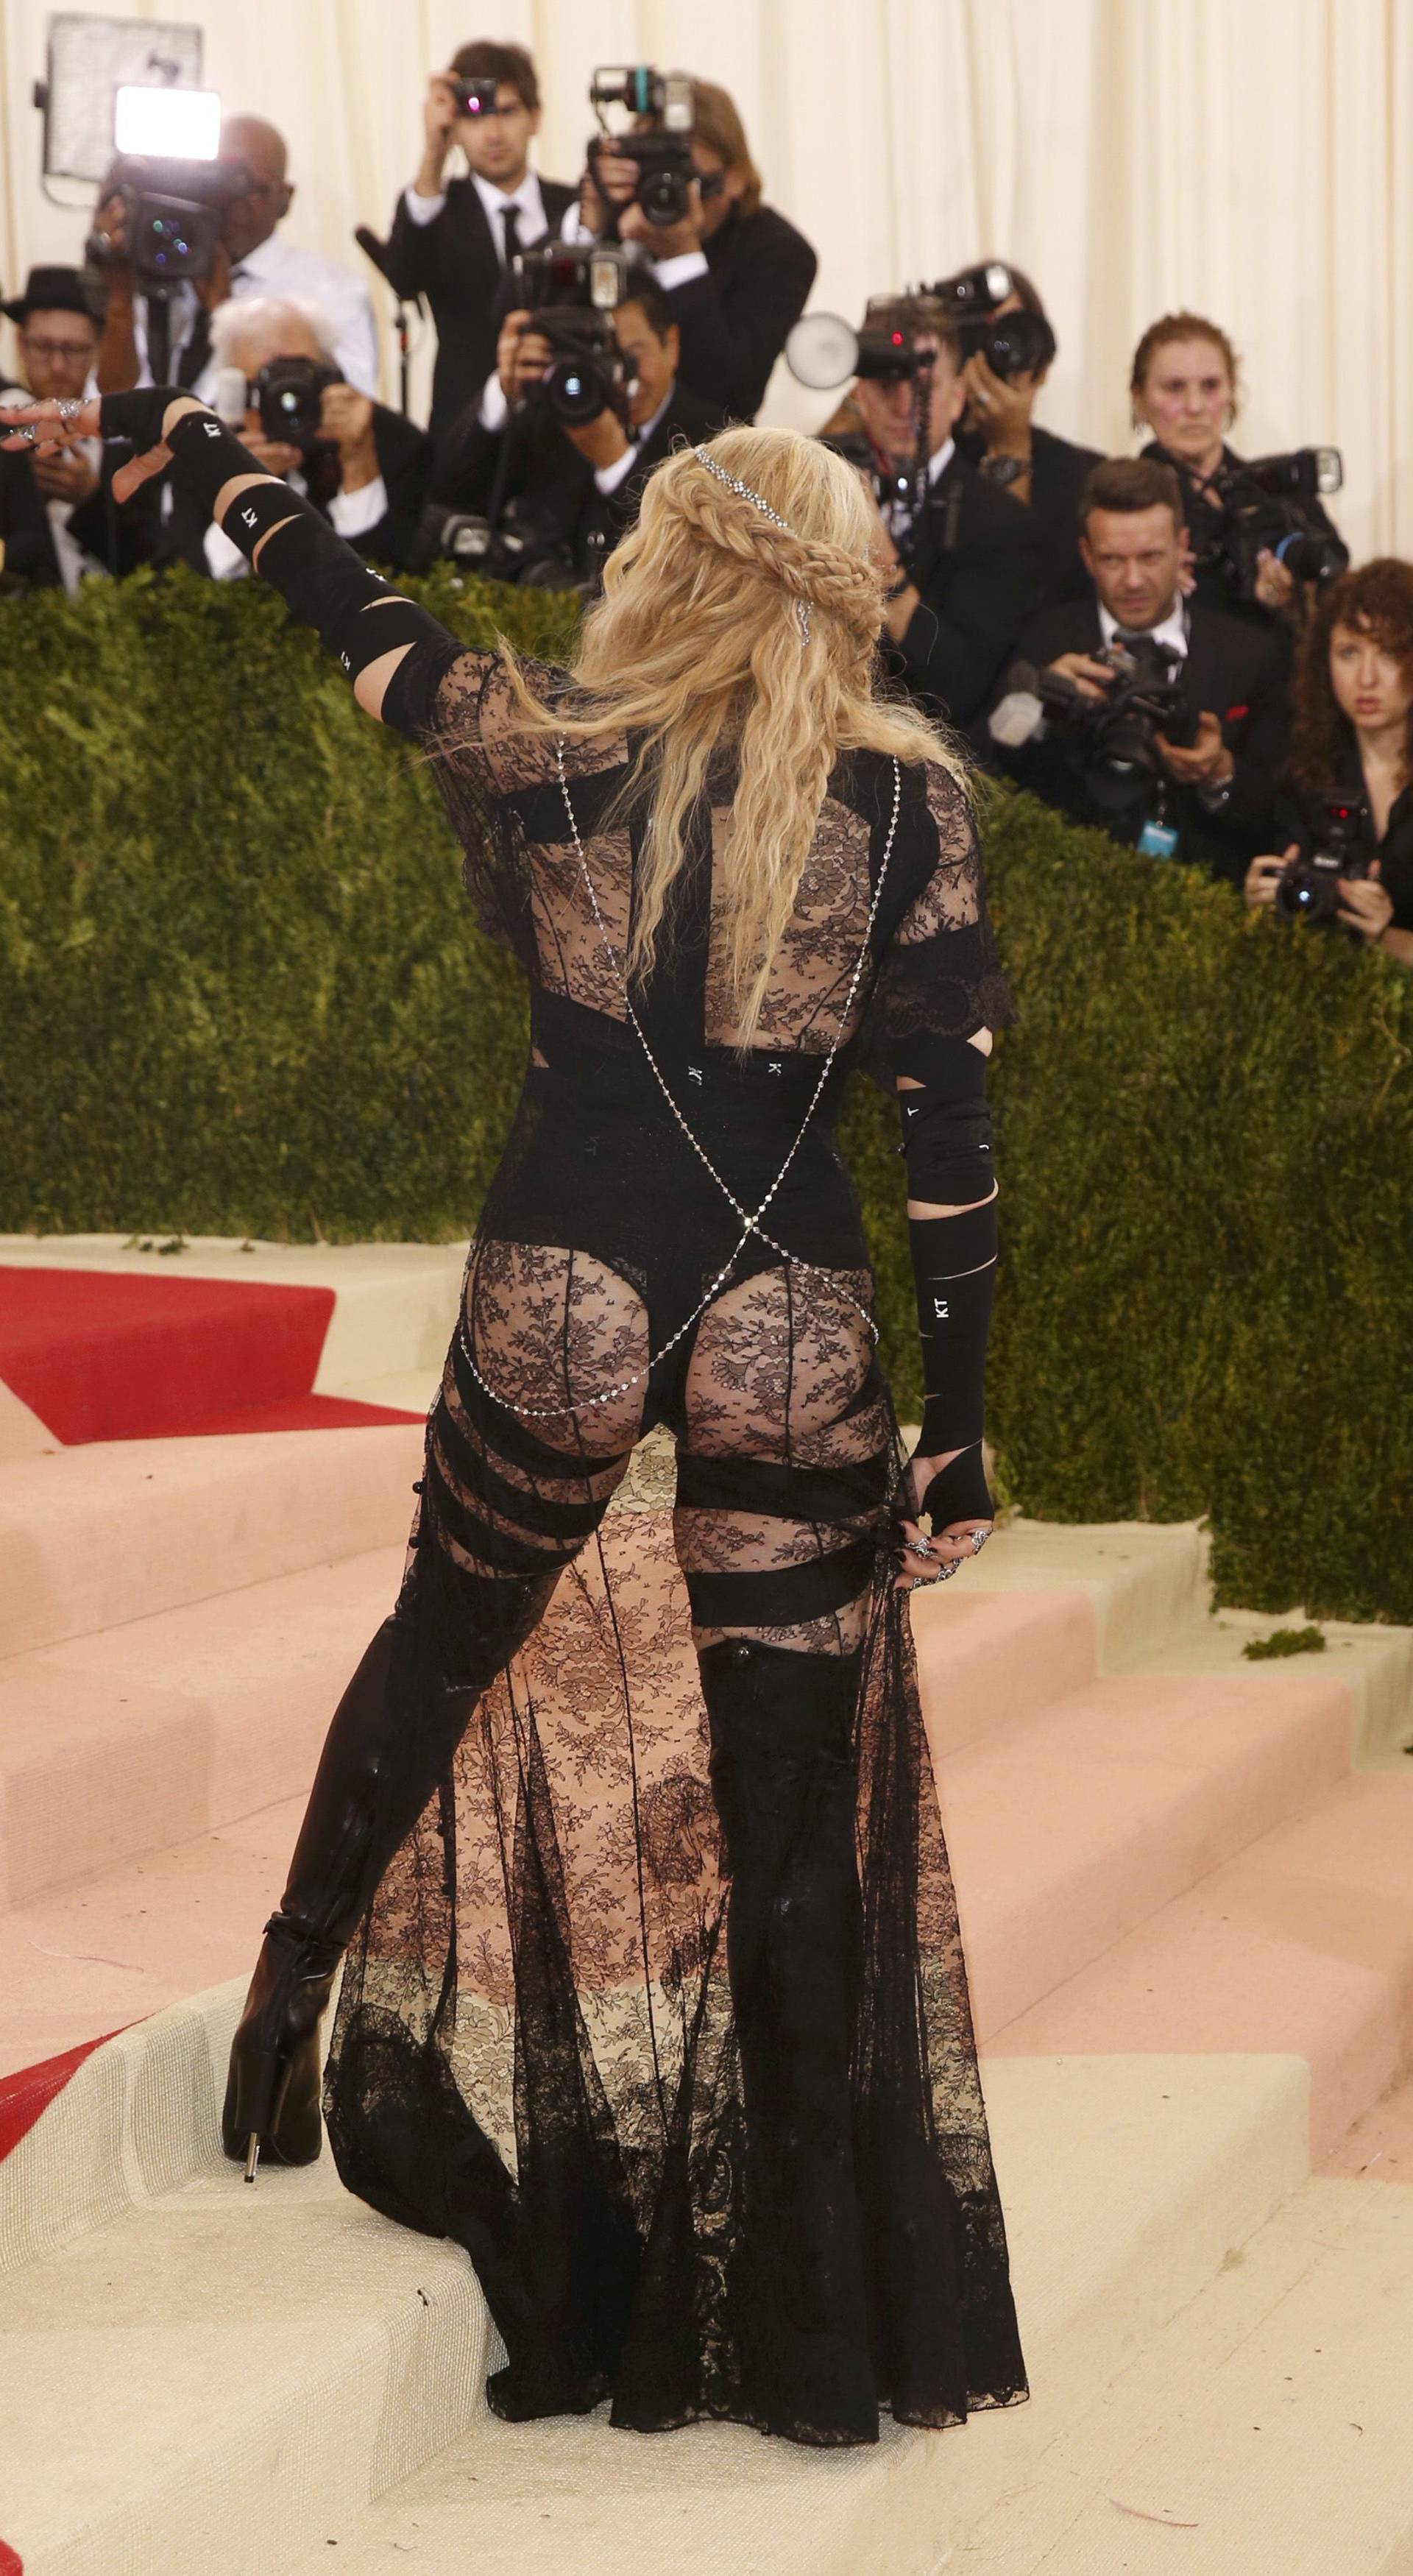 Singer Madonna arrives at the Met Gala in New York